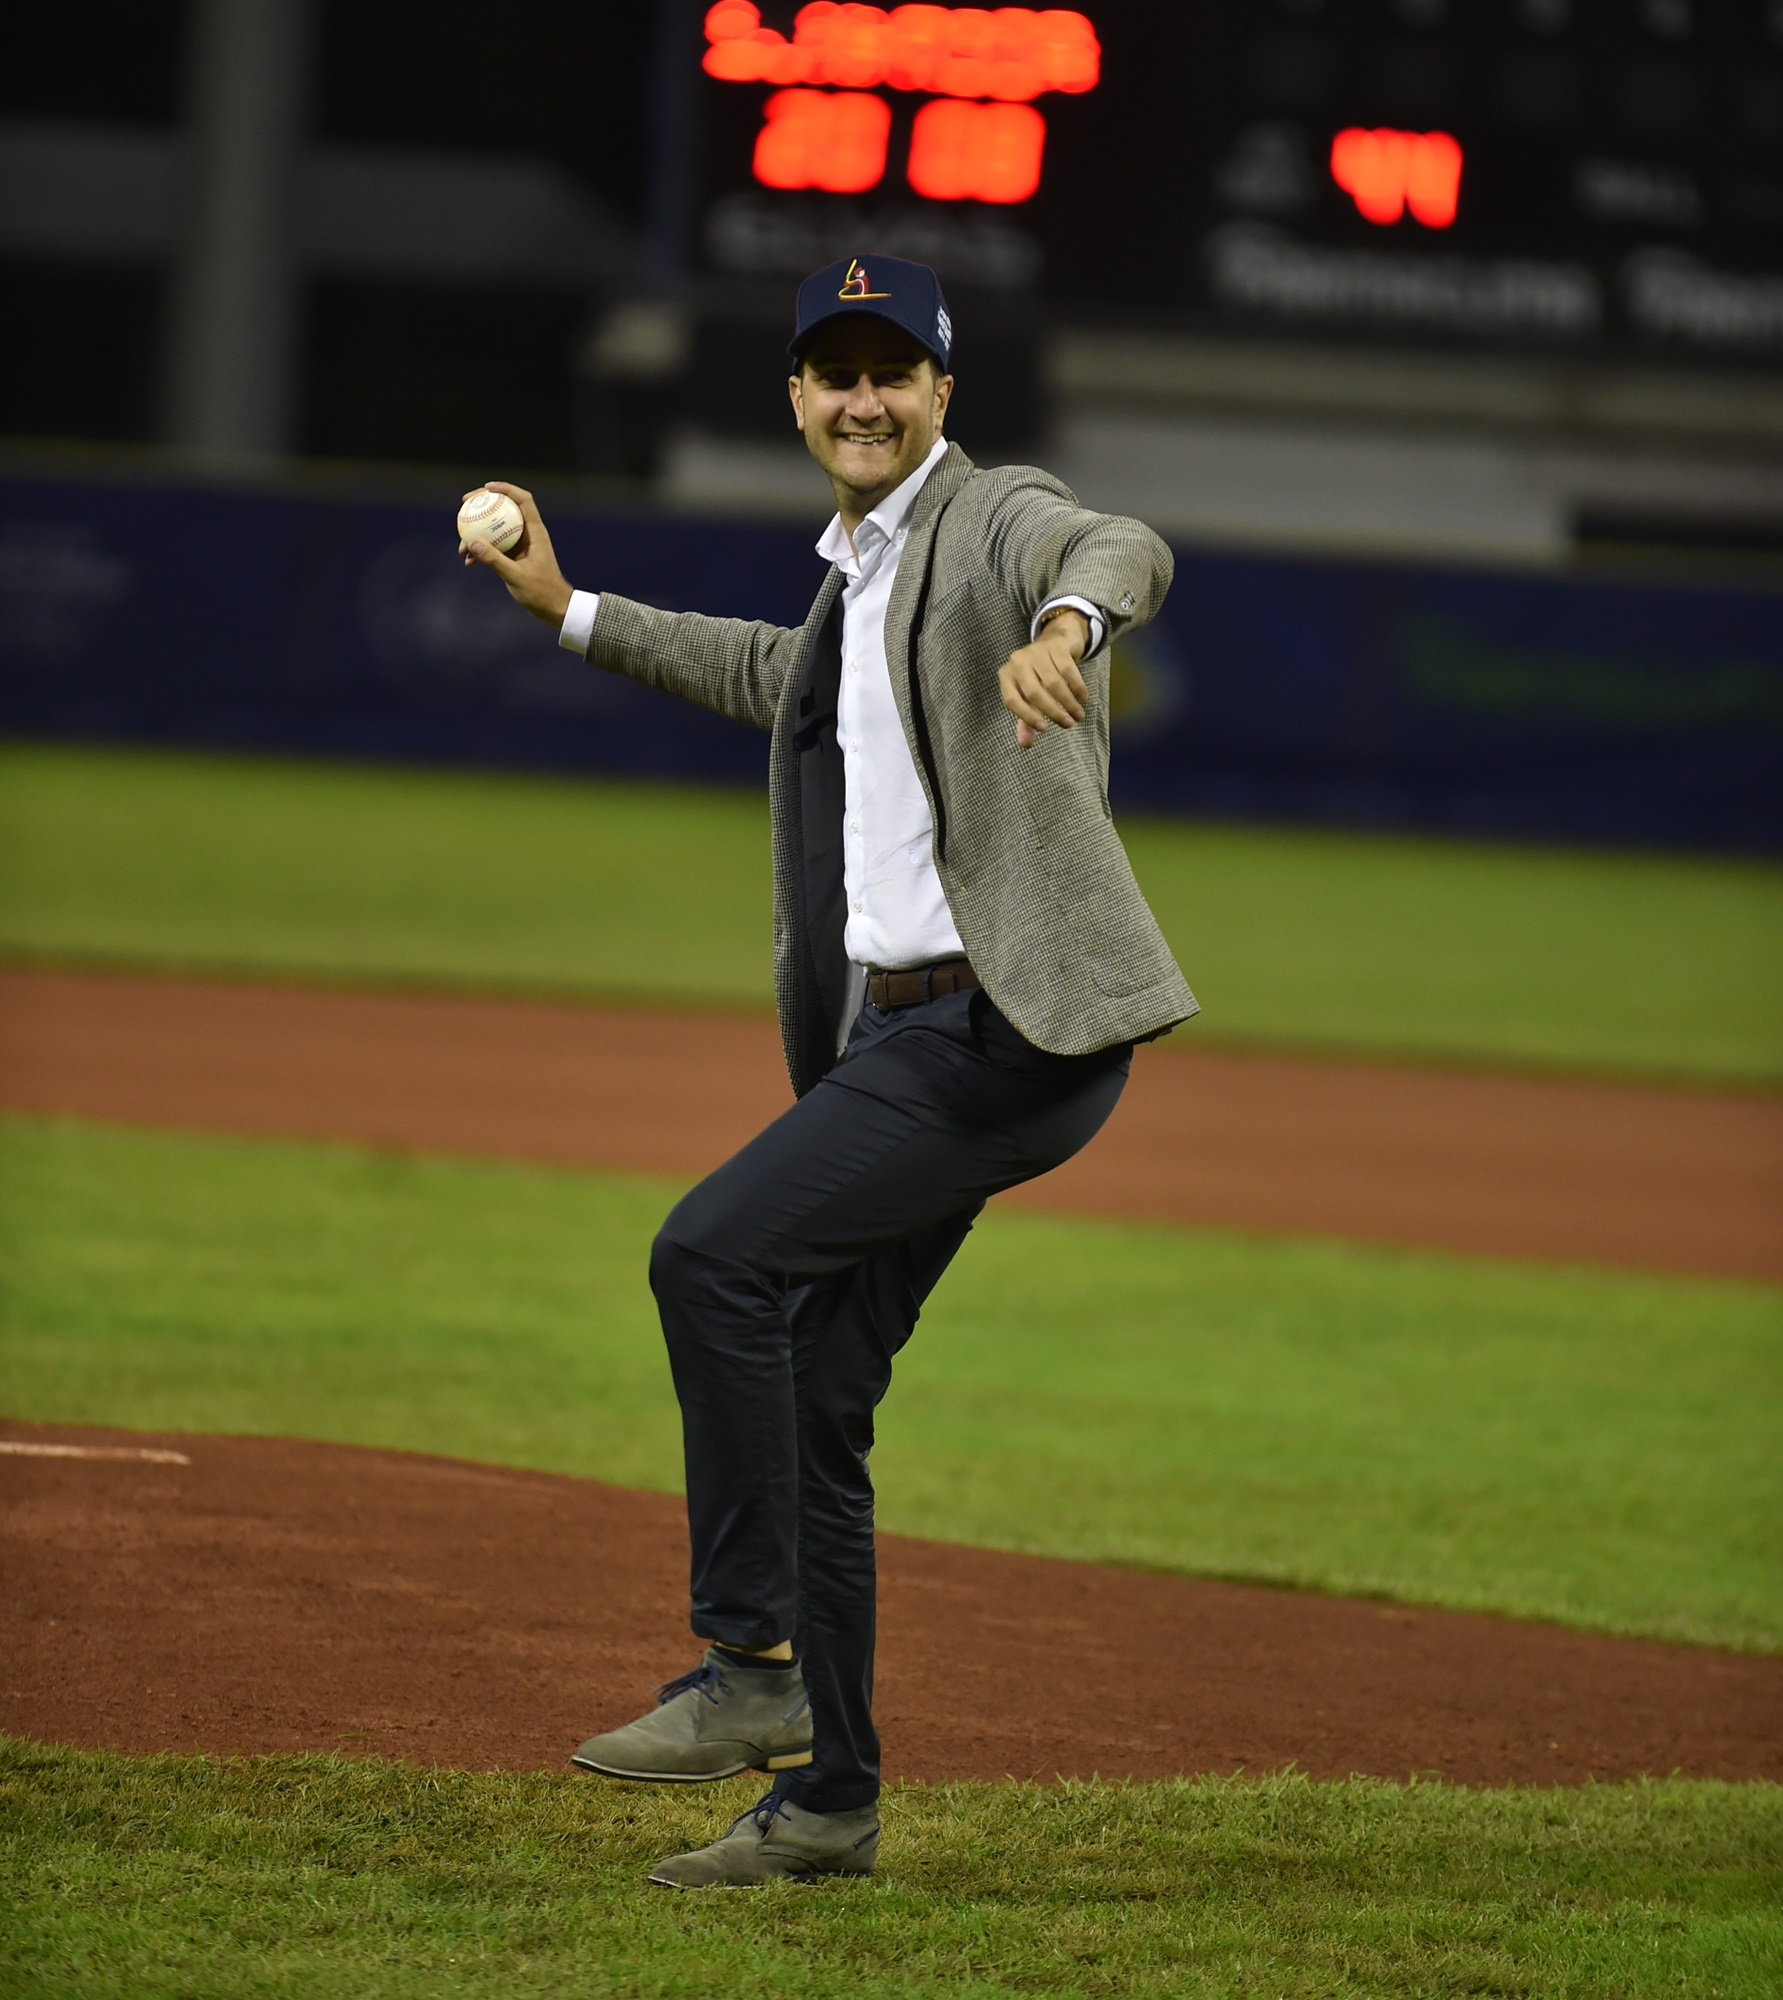 The Deputy Mayor of Parma Marco Bosi threw the ceremonial first pitch